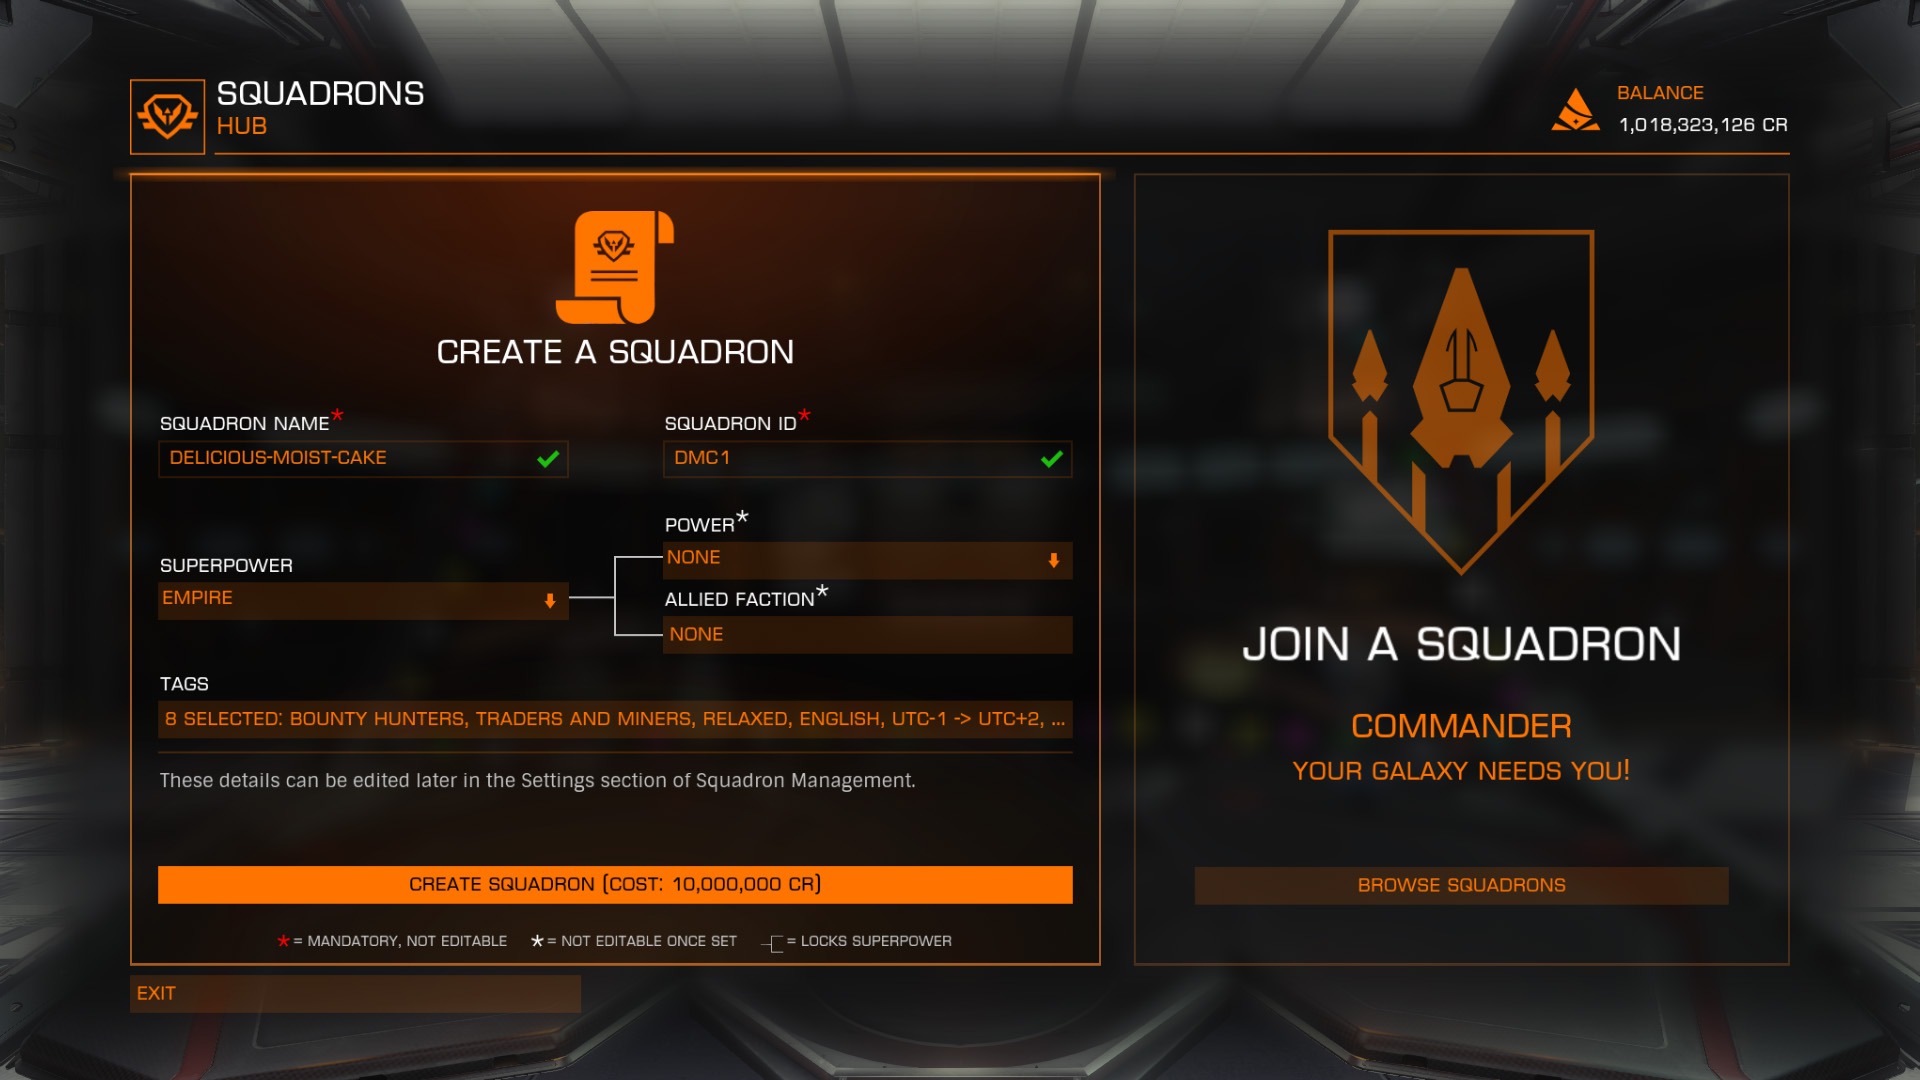 Elite: Dangerous beginner's guide: A screenshot showing how to fill out the Squadrons creation form